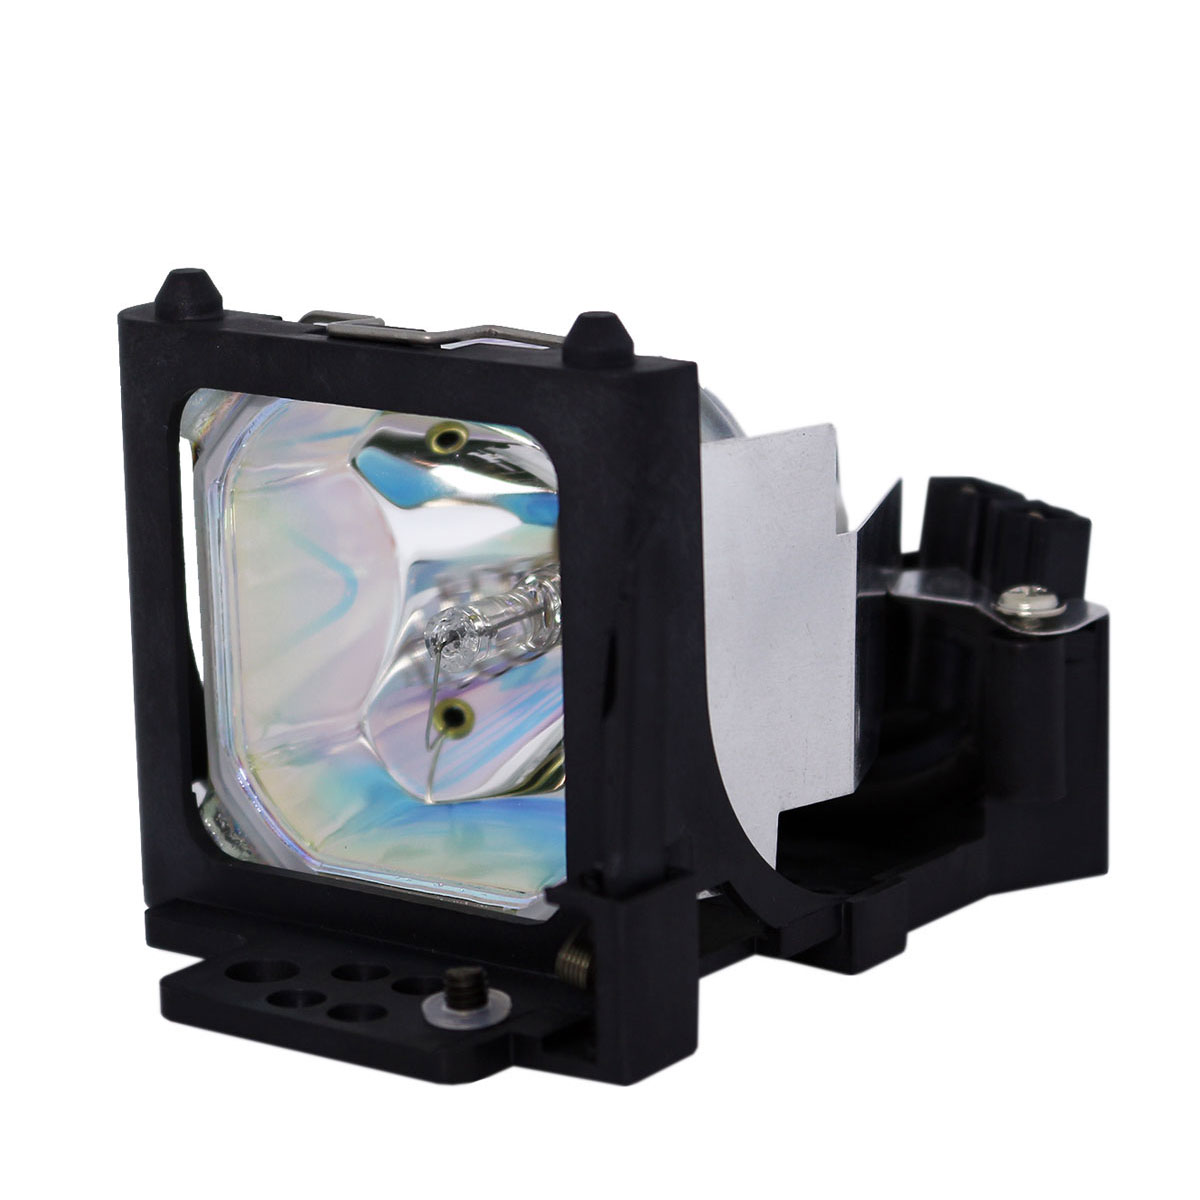 Lamp Housing For Liesegang DV-345 / DV345 Projector DLP LCD Bulb